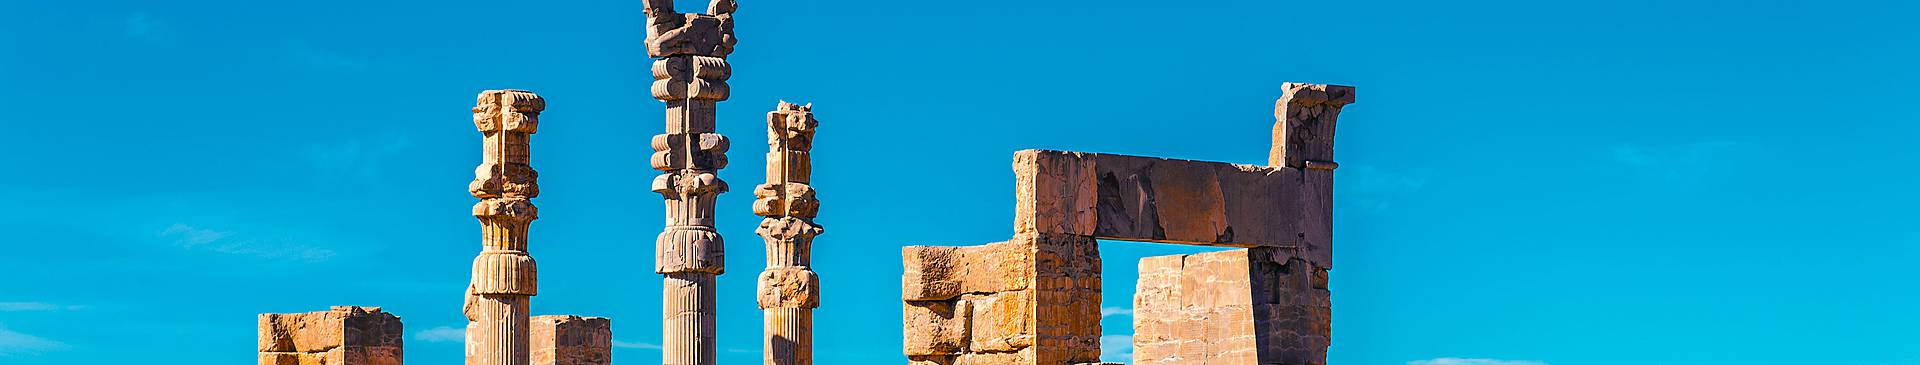 Historical sites in Iran